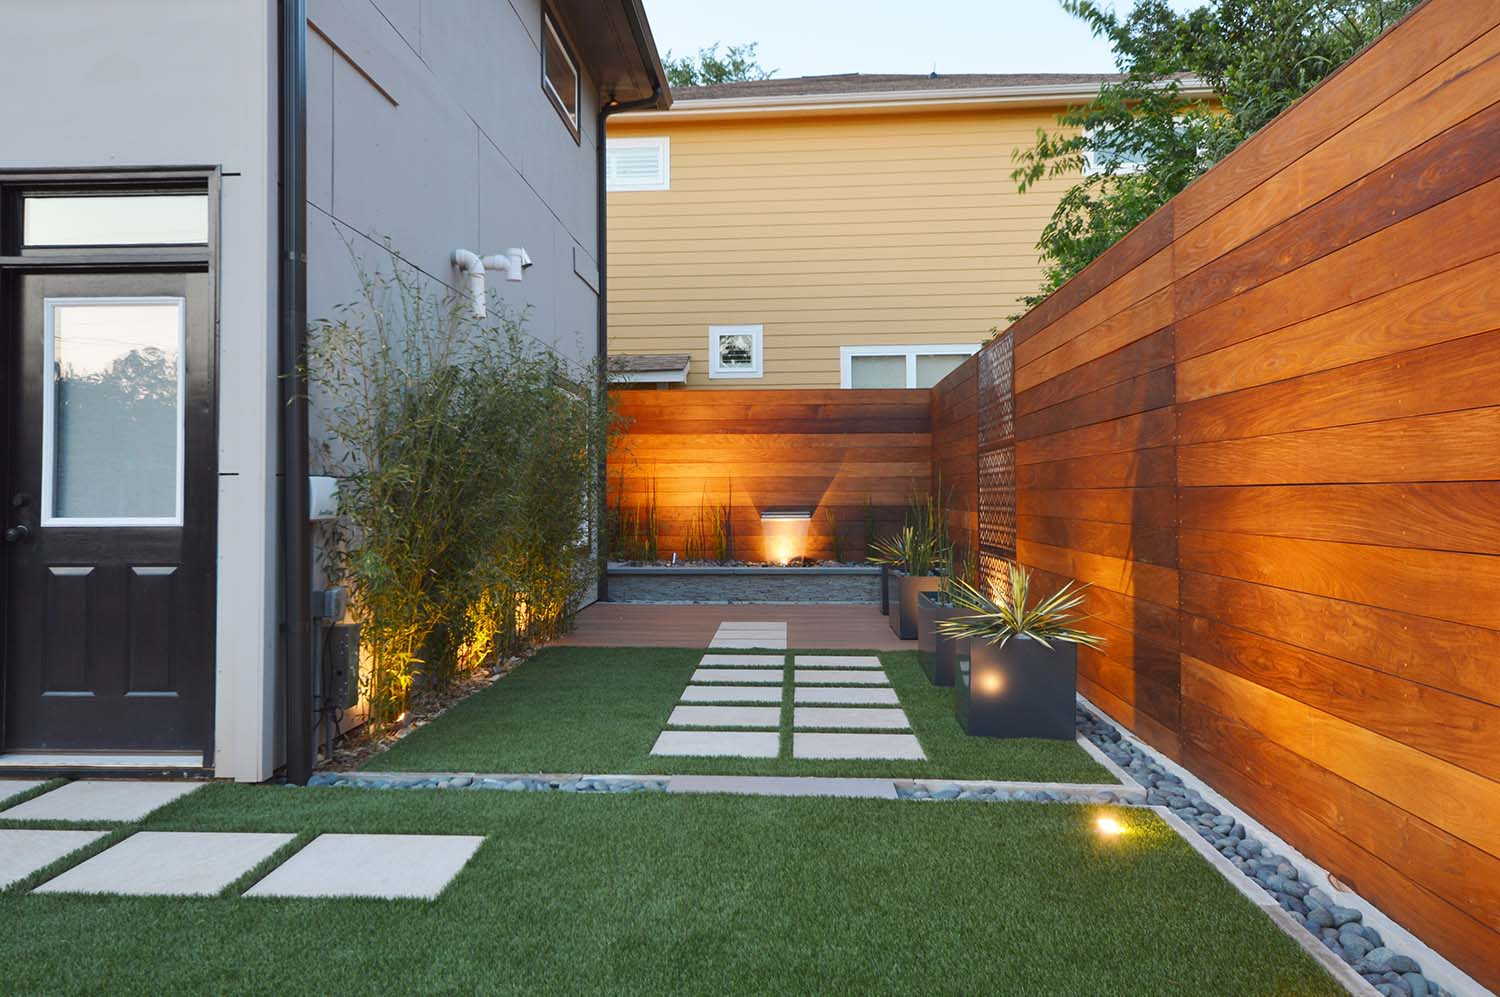 Home Design: Sustainable Landscape Design Compliments Modern Architecture